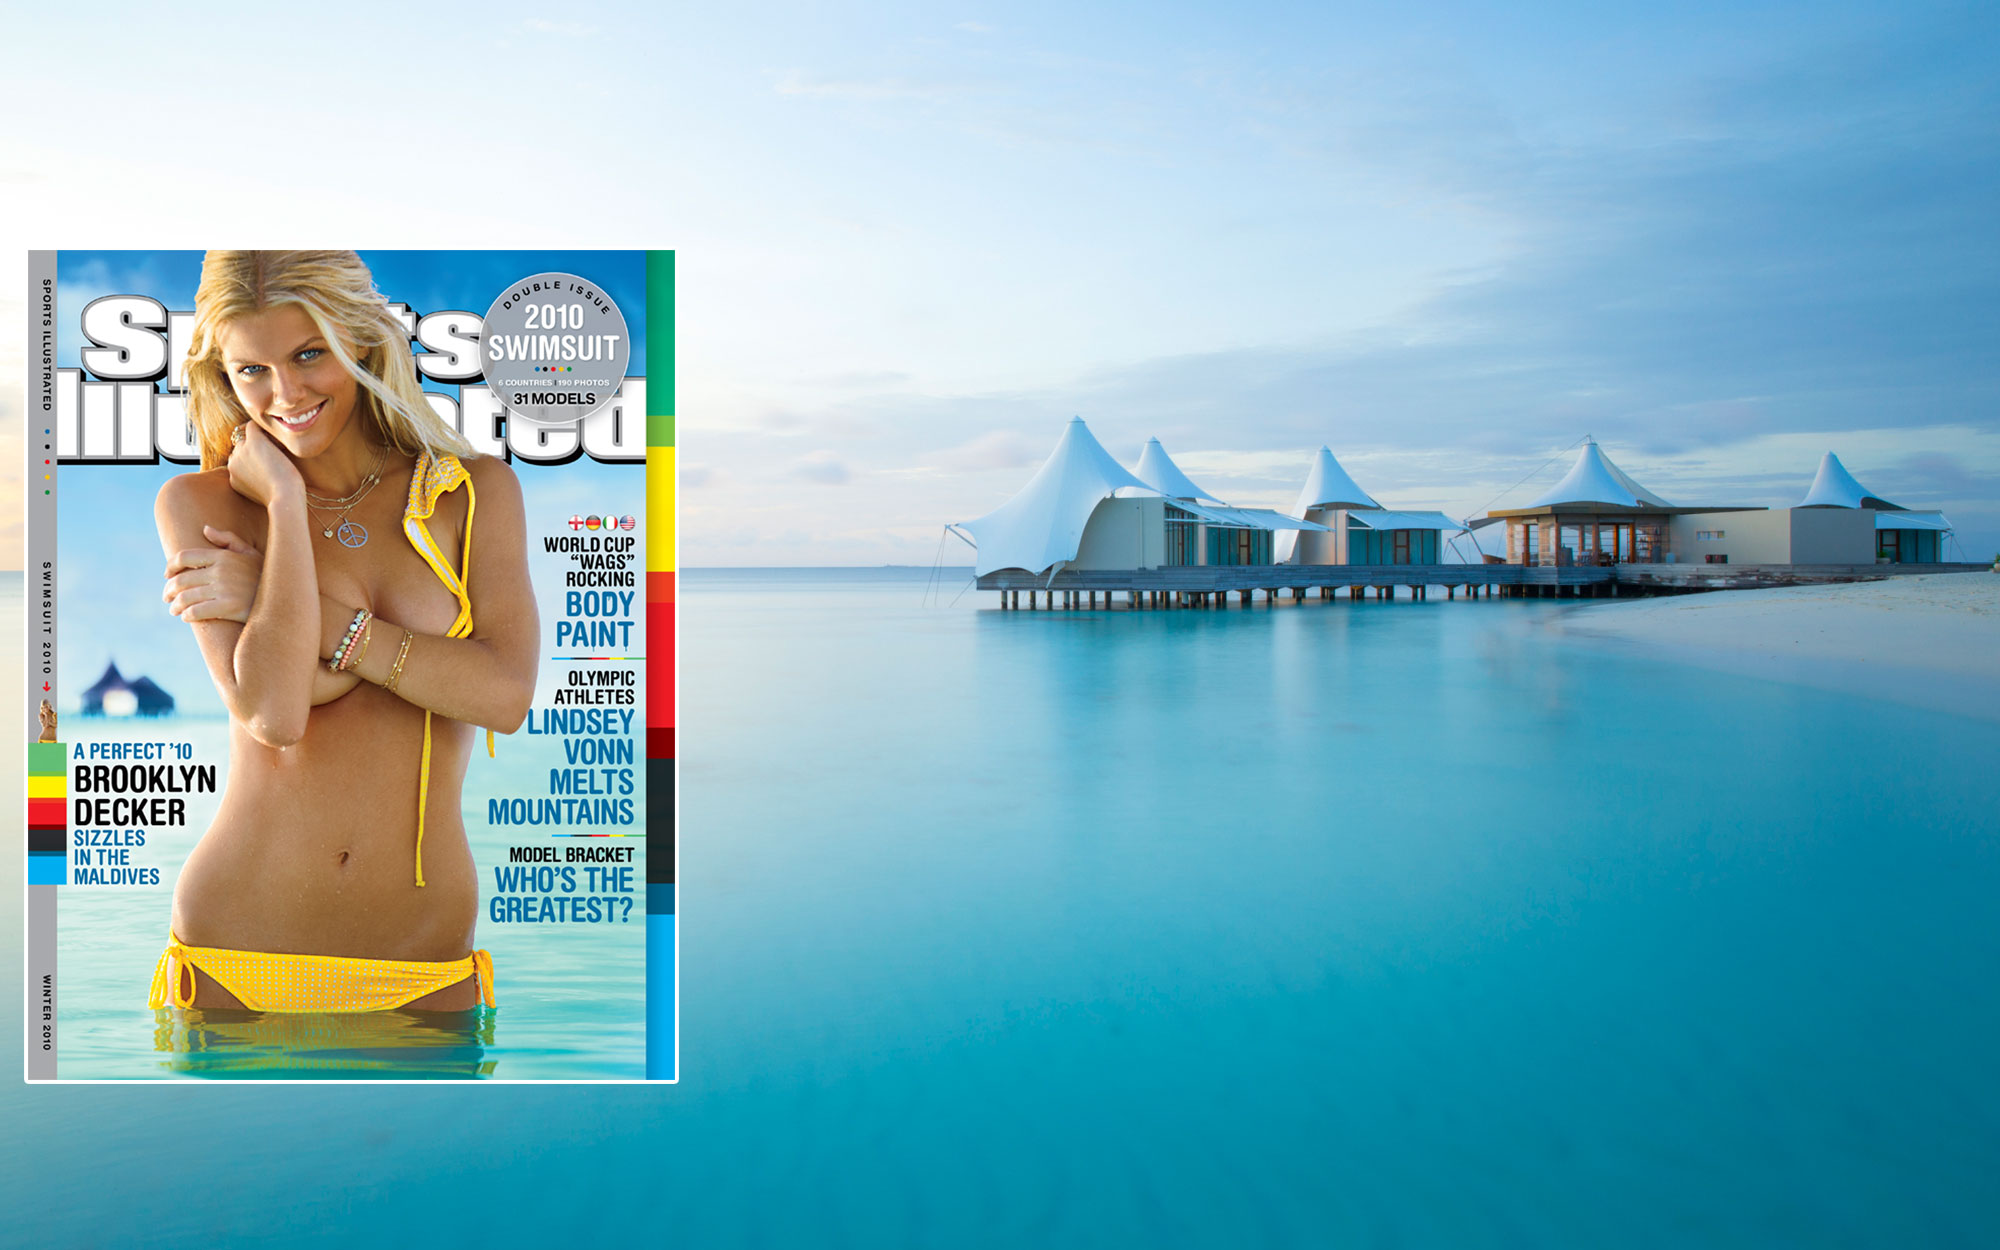 SI Swimsuit 2010: Maldives